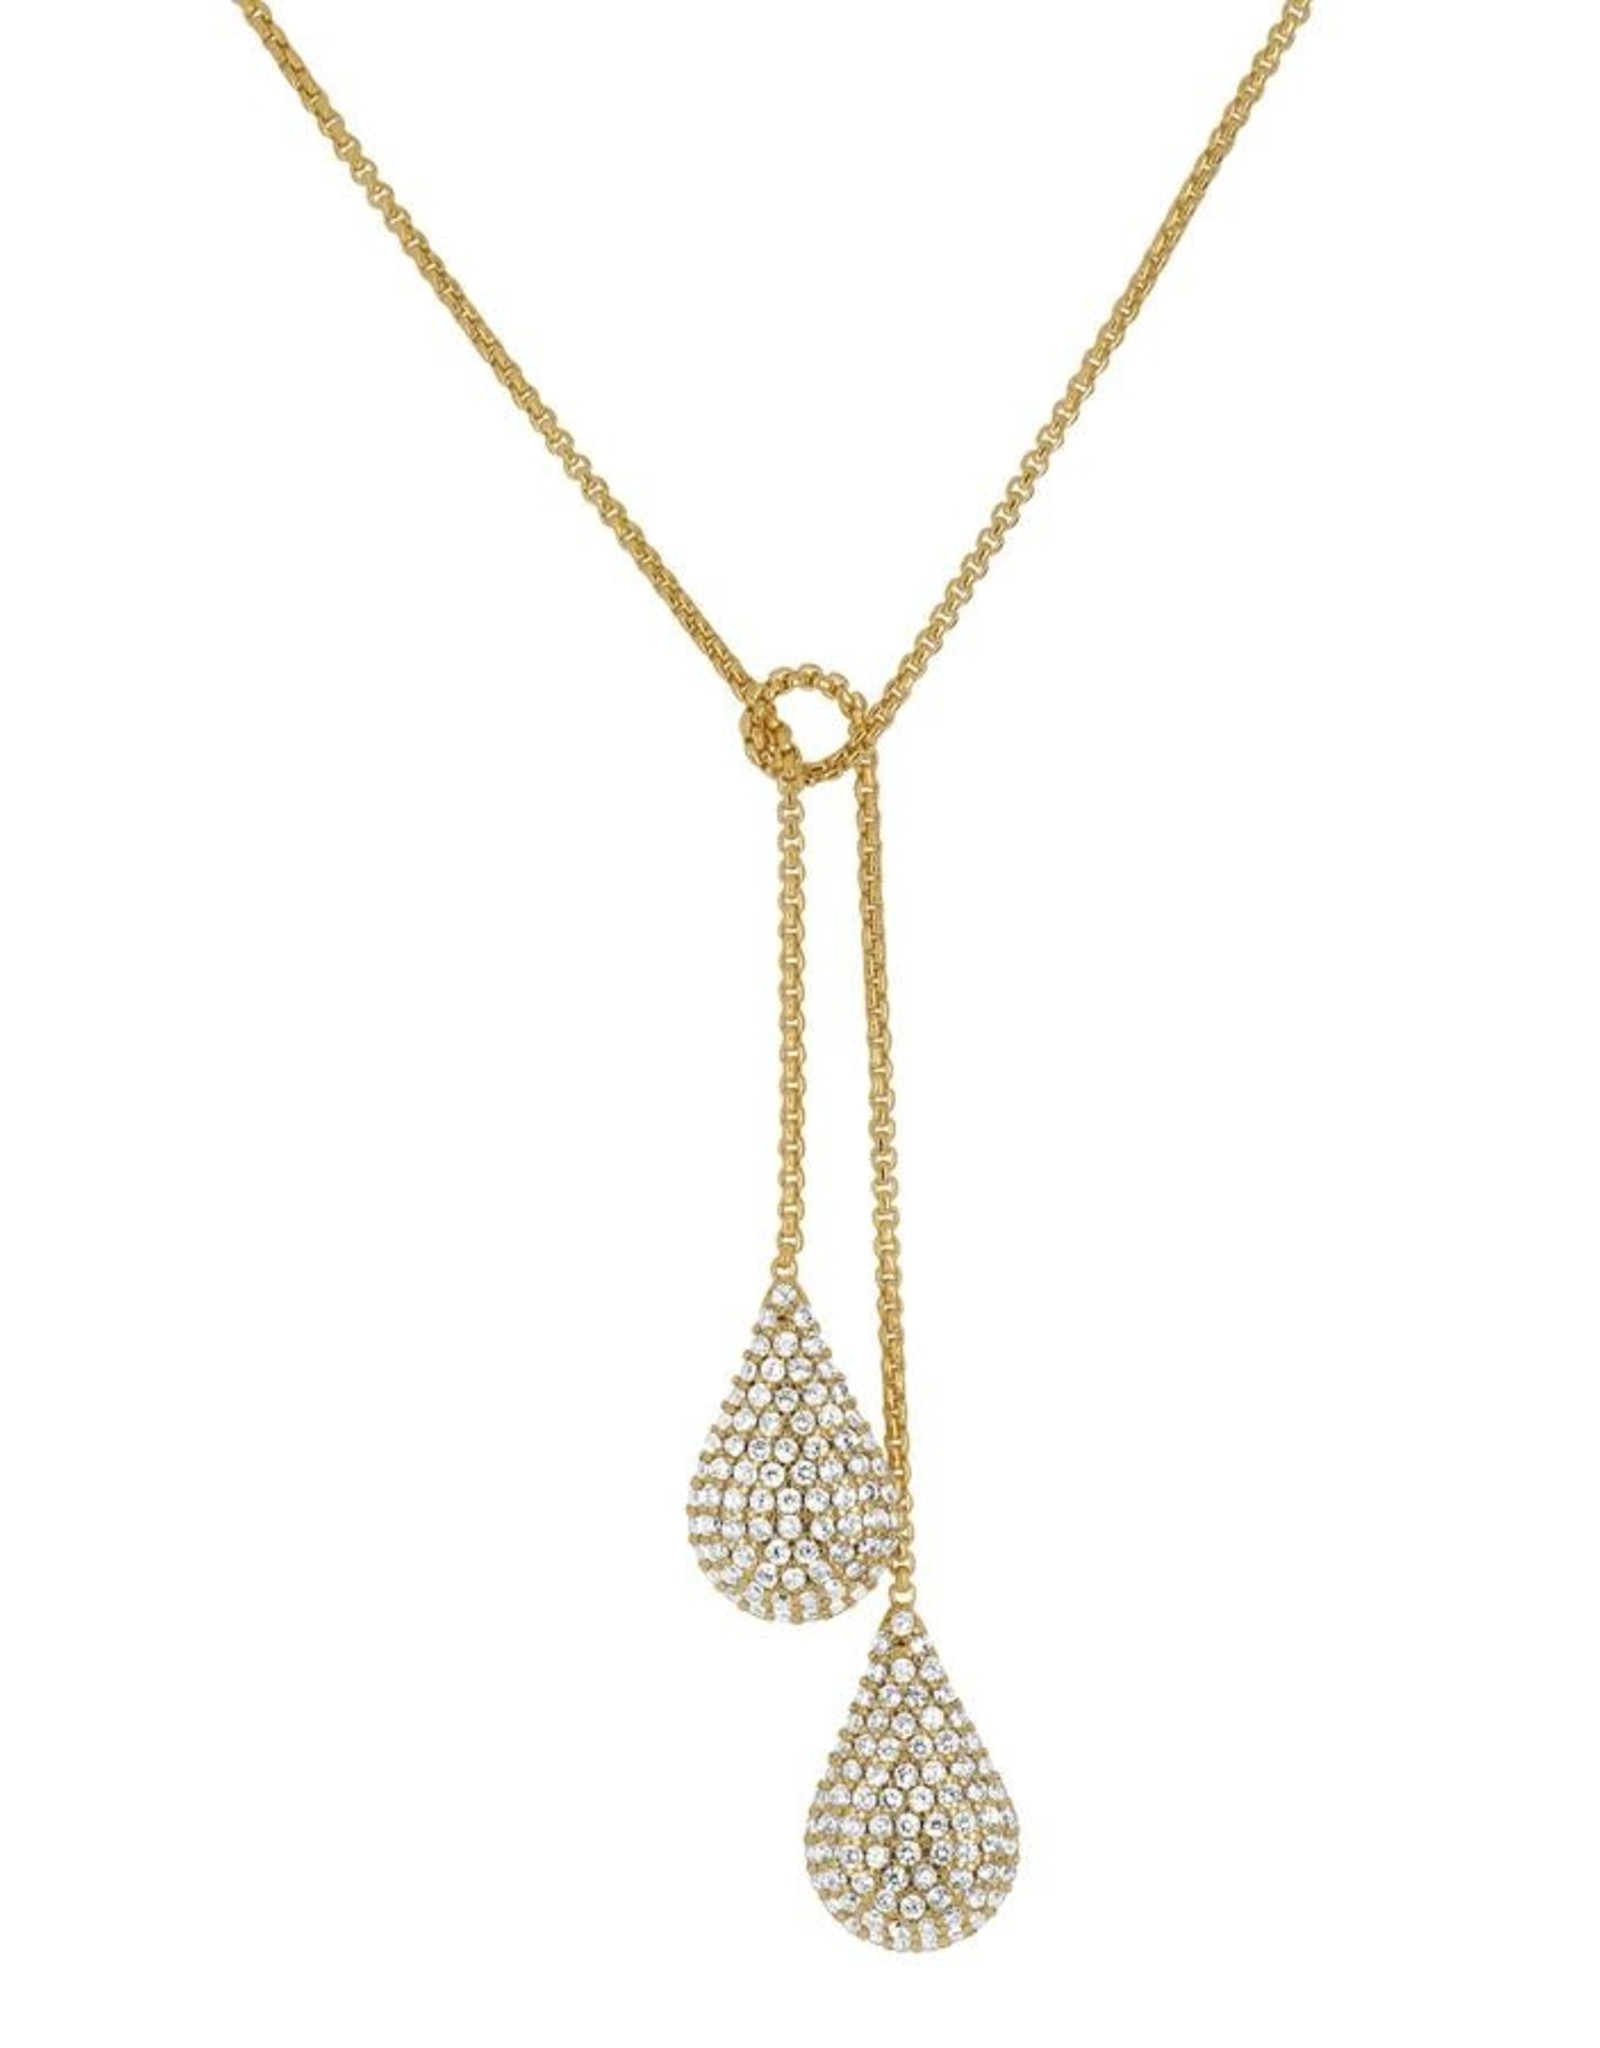 Dean Davidson Pave Teardrop Wrap Necklace - White Topaz